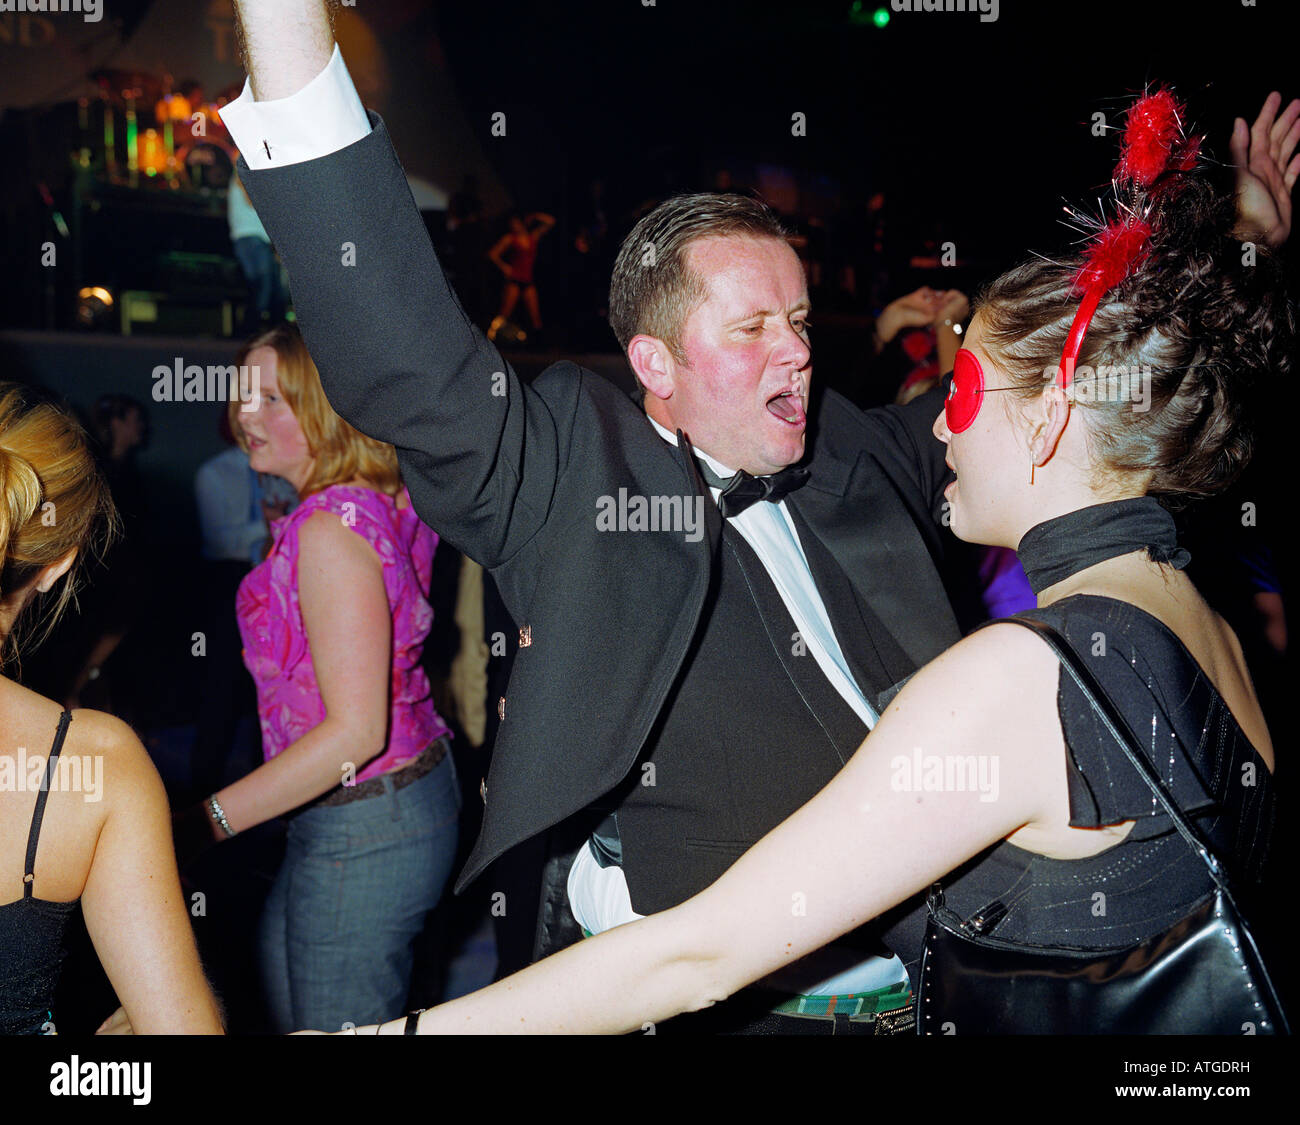 A smartly dressed man in suit and bow tie dances with a woman in a red mask Stock Photo